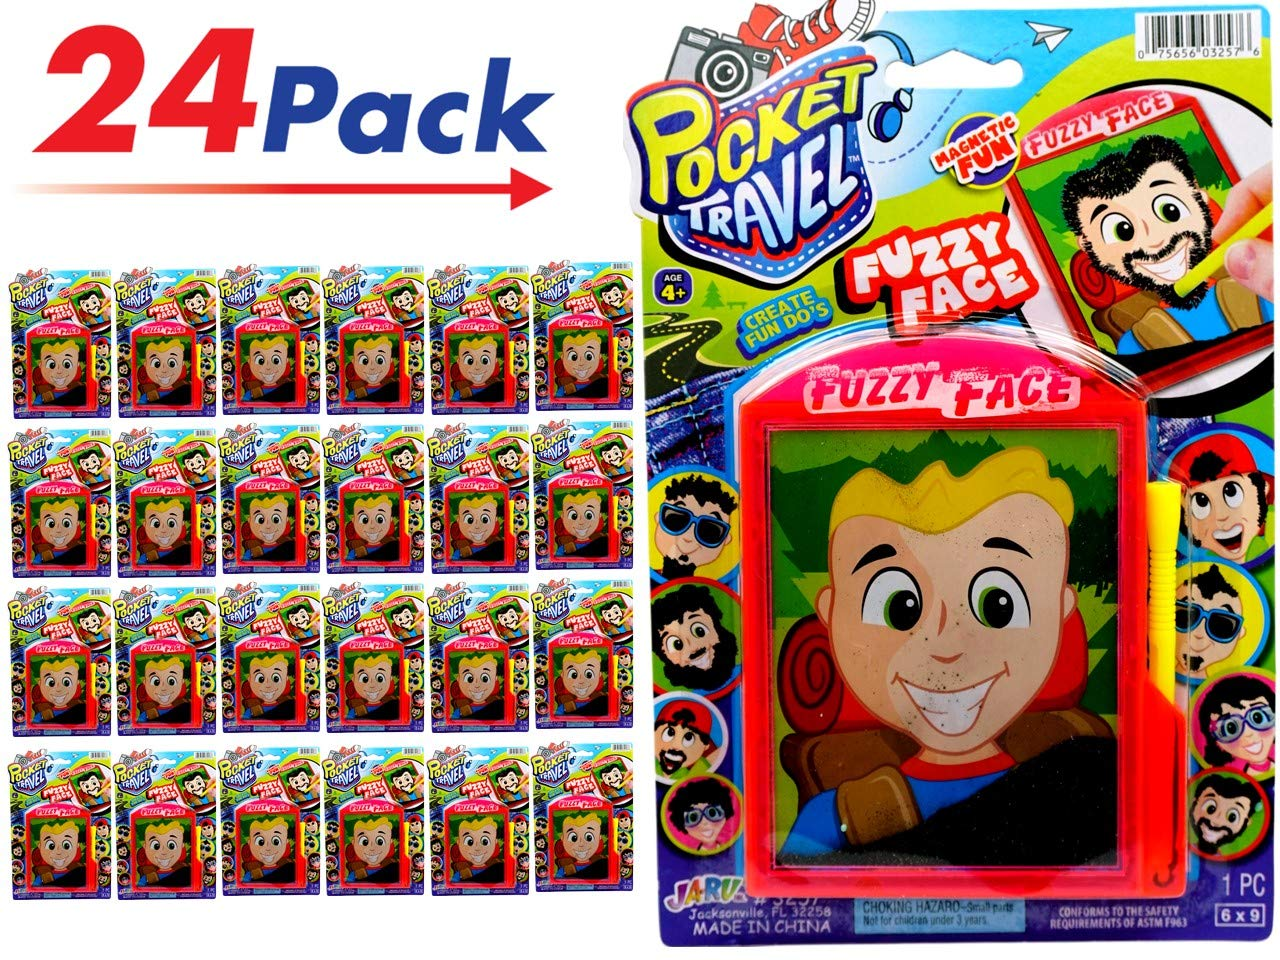 JA-RU Pocket Travel Game Fuzzy Face (Pack of 24) Magnetic Toys Draw Facial Hair to Different Faces | Item #3257-24